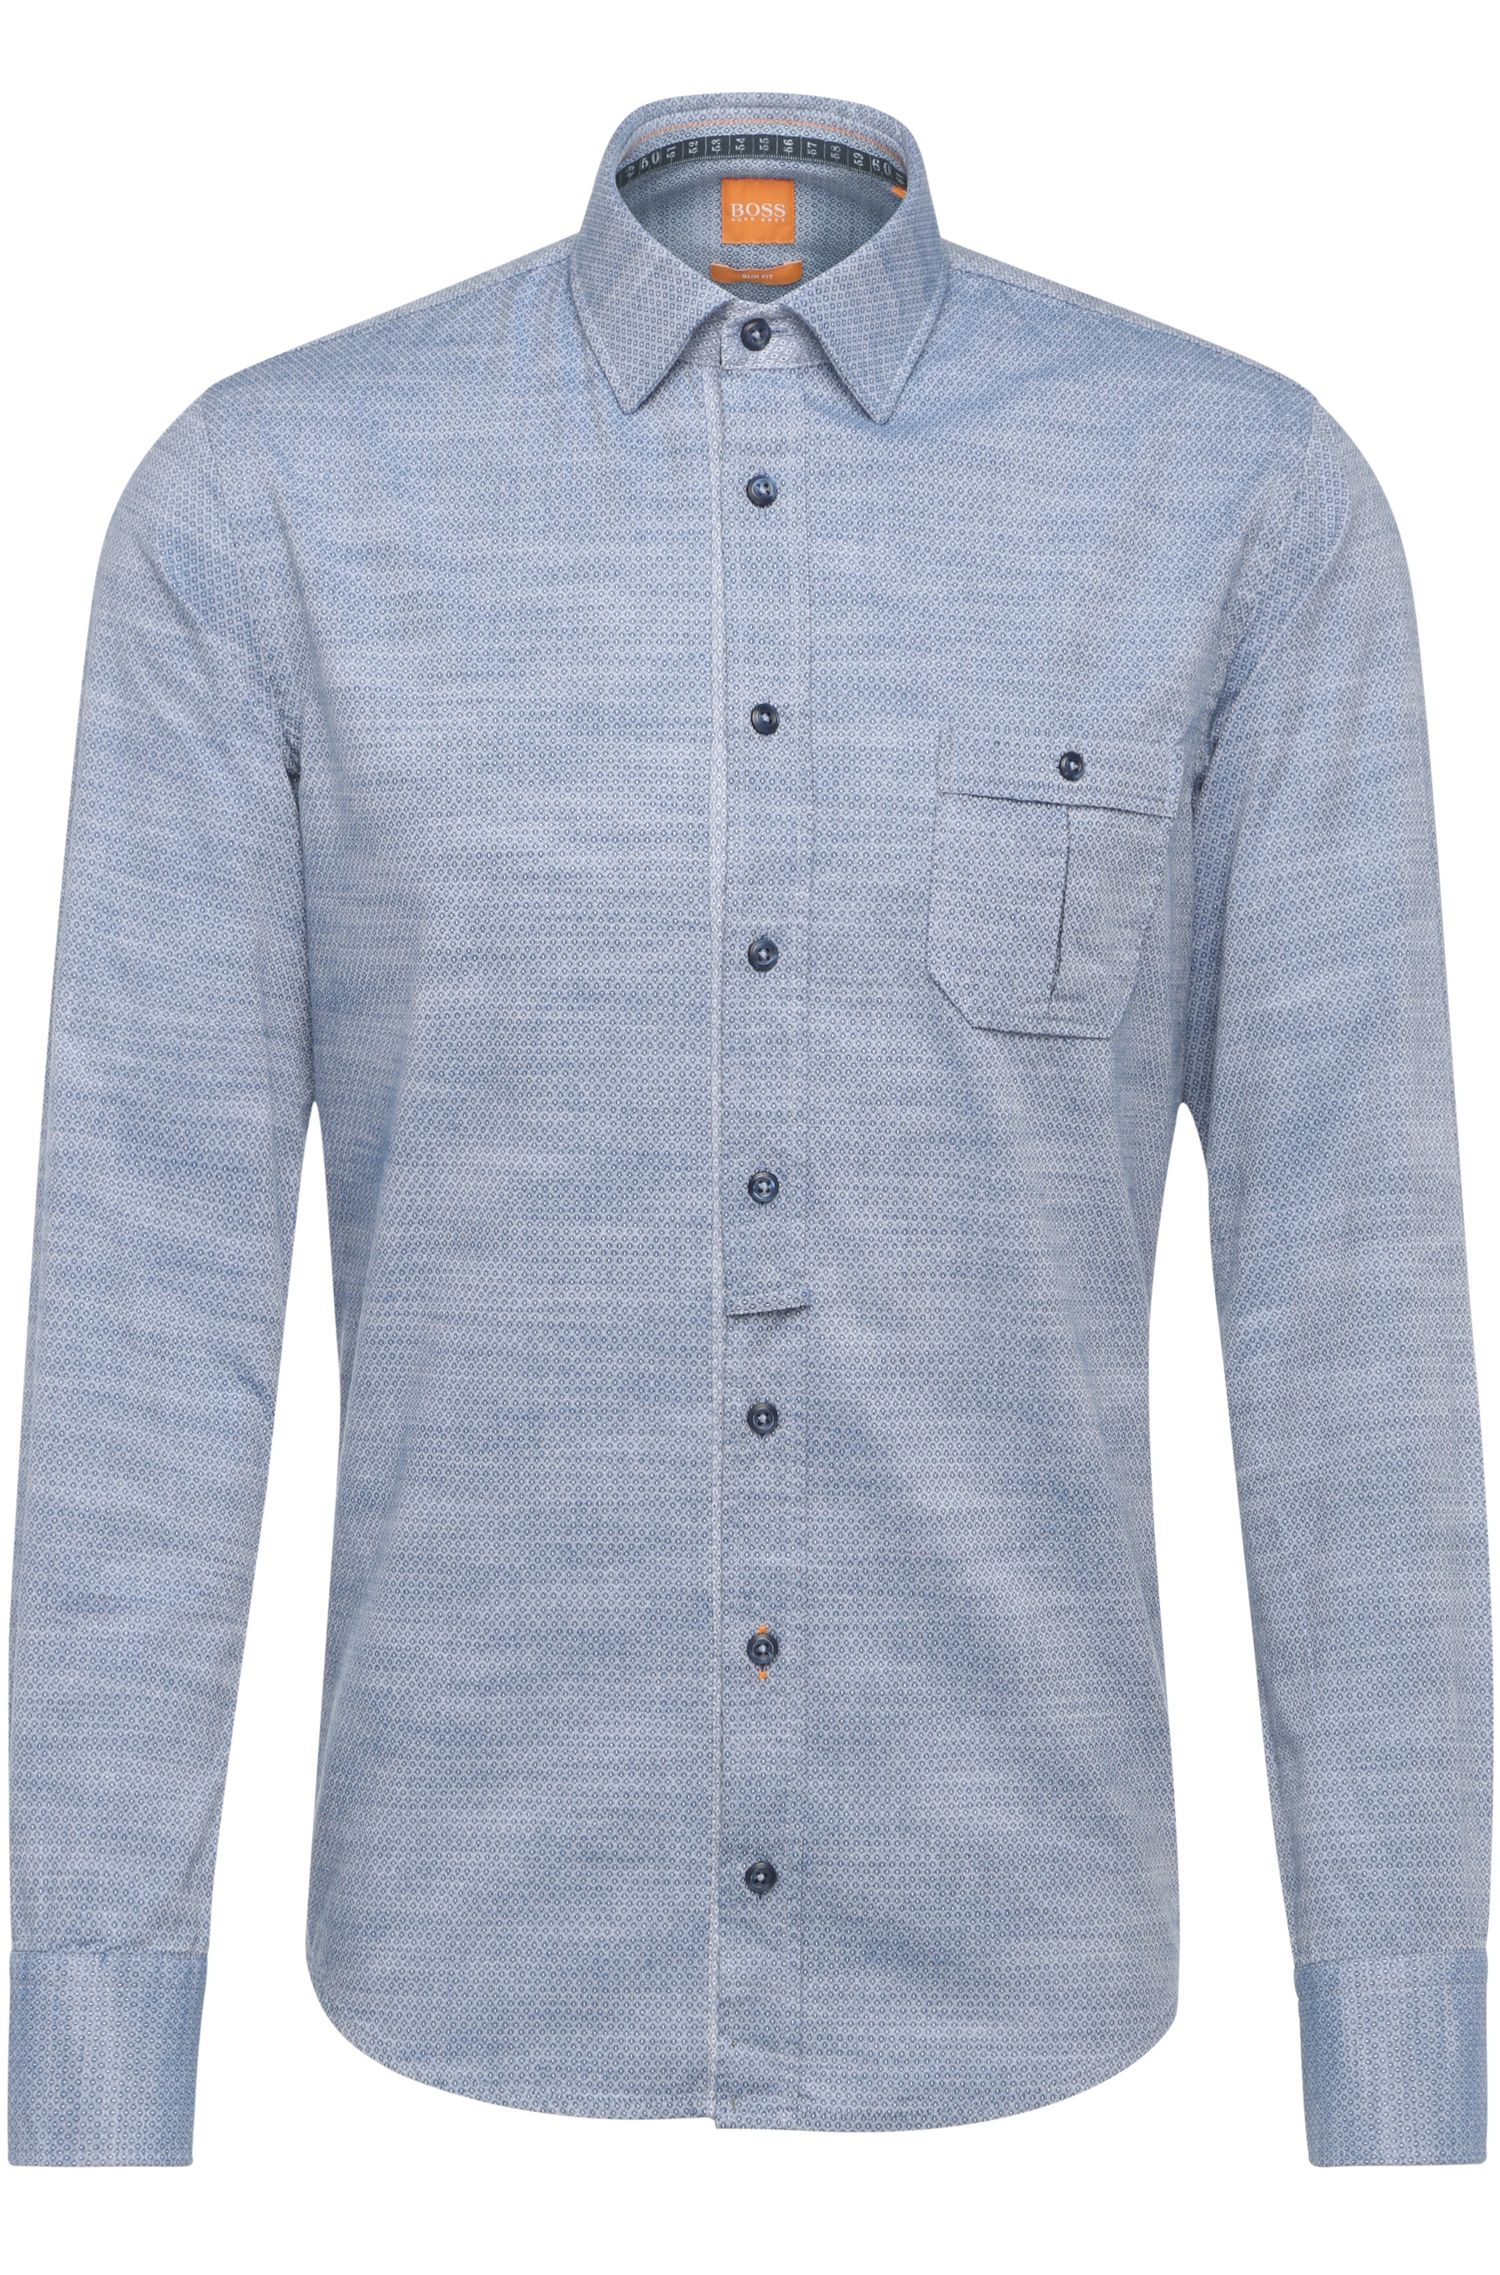 'EslimE' | Extra Slim Fit, Cotton Button Down Shirt